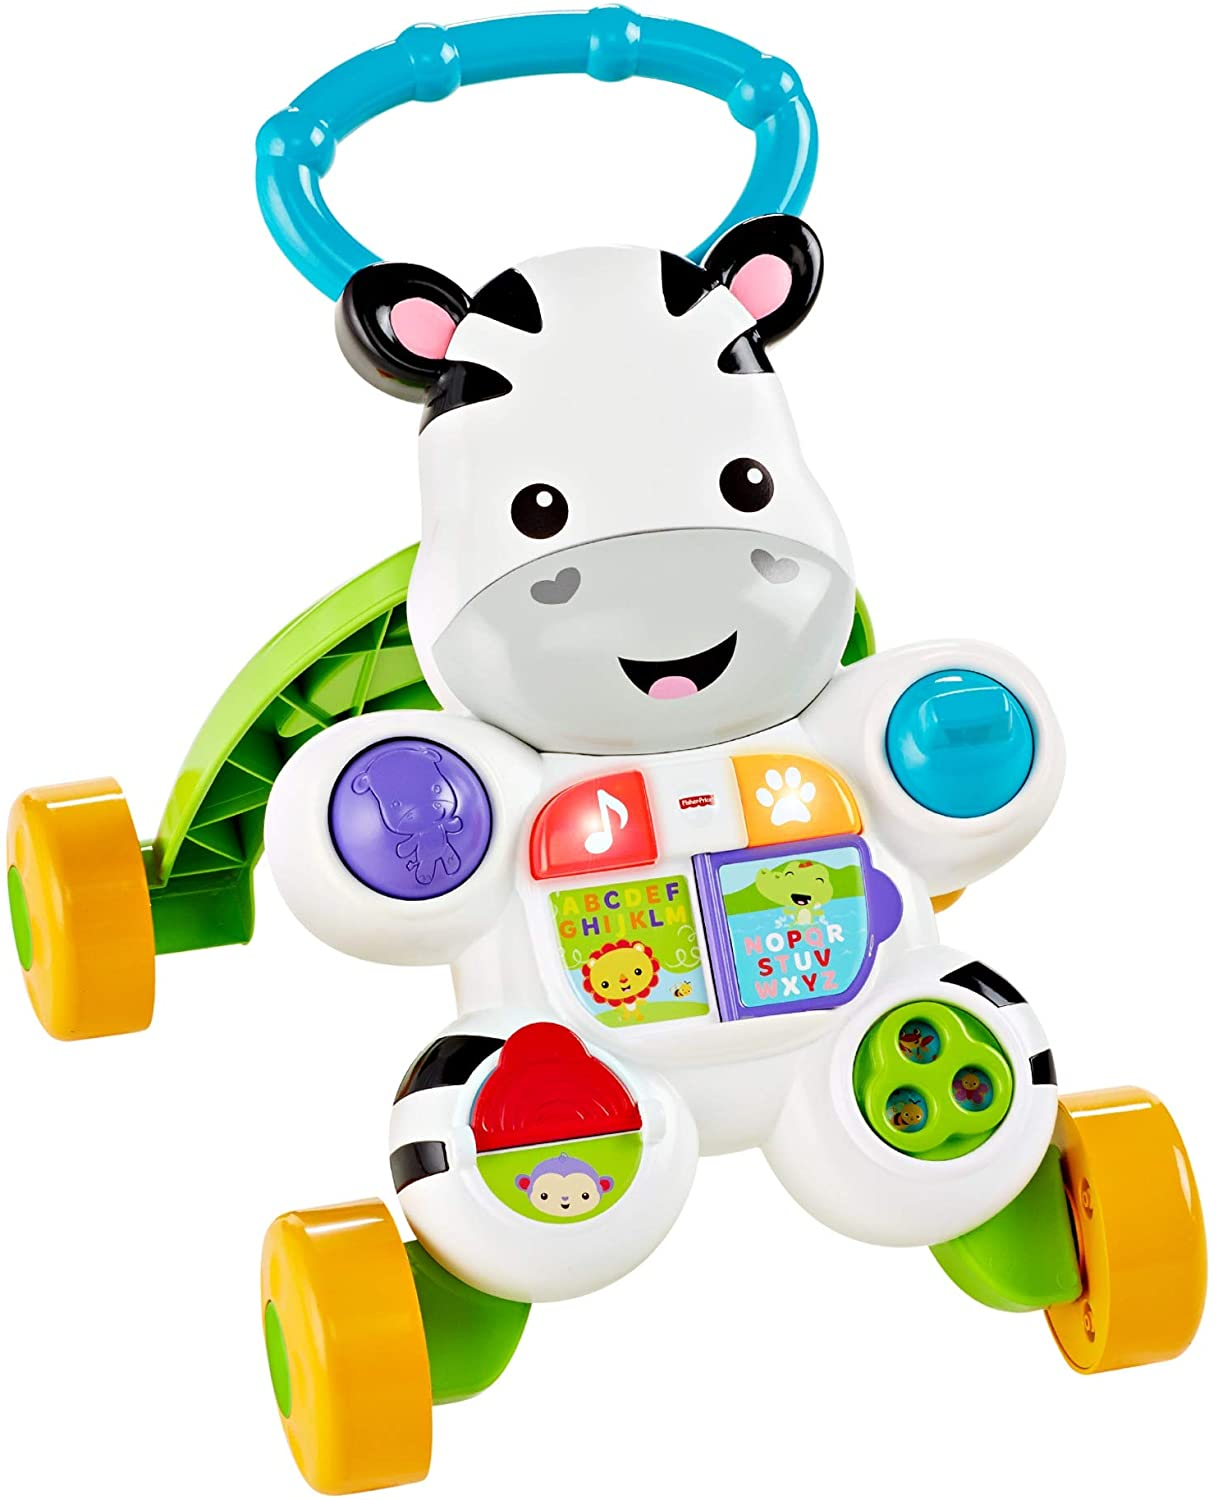 Baby walker with music and sounds for learning.